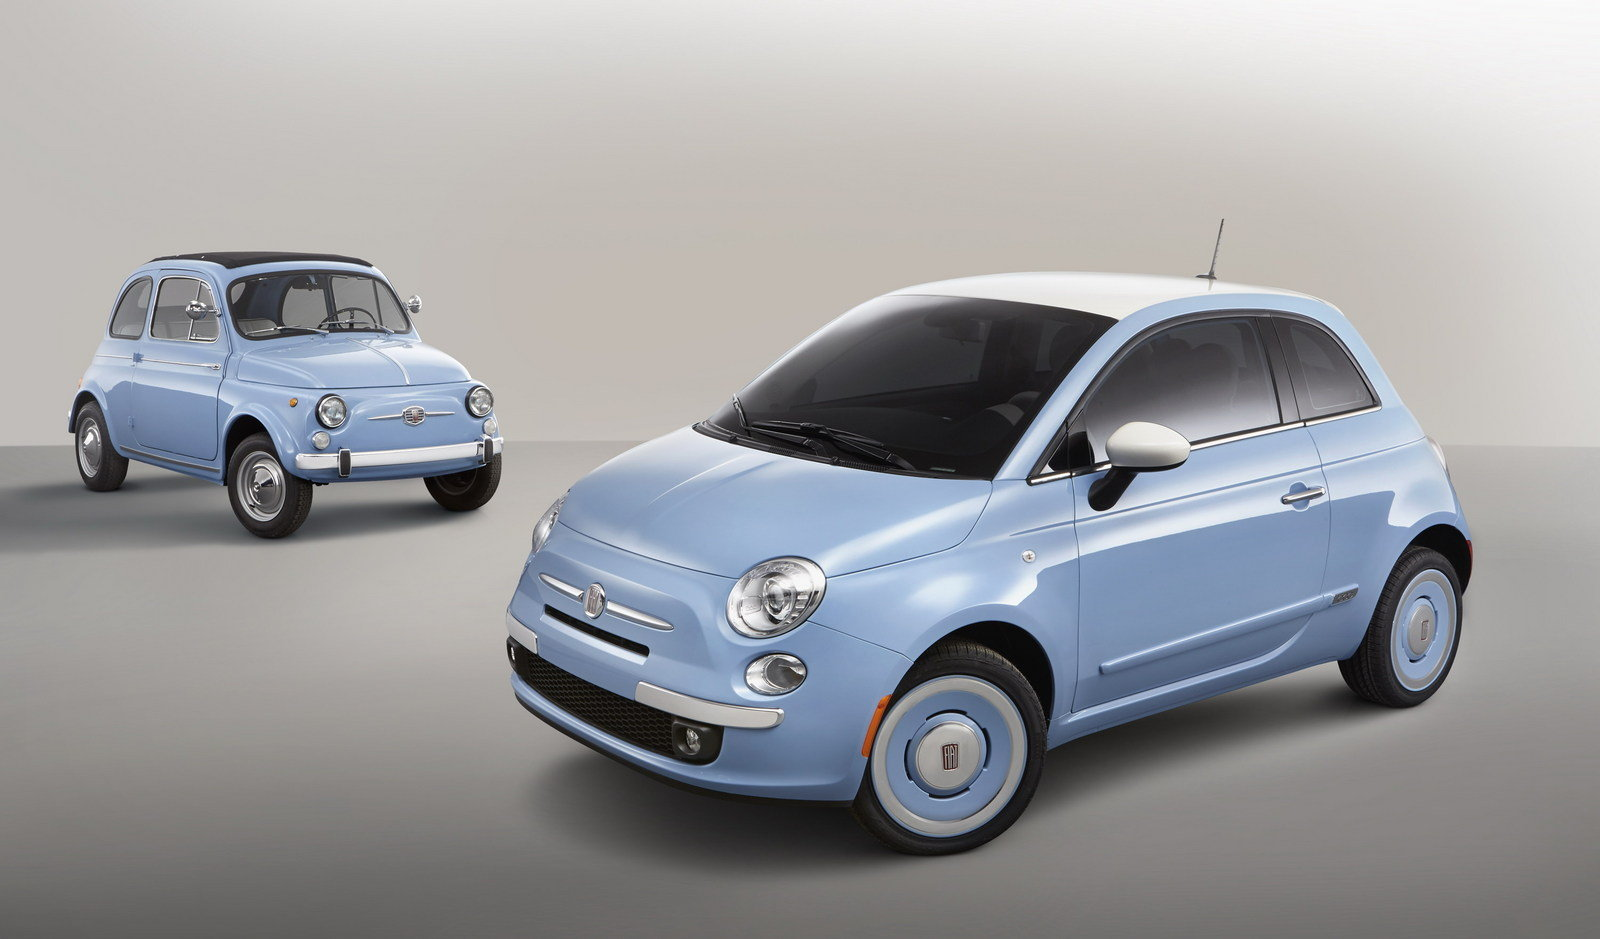 2014 fiat 500 1957 edition review top speed. Black Bedroom Furniture Sets. Home Design Ideas